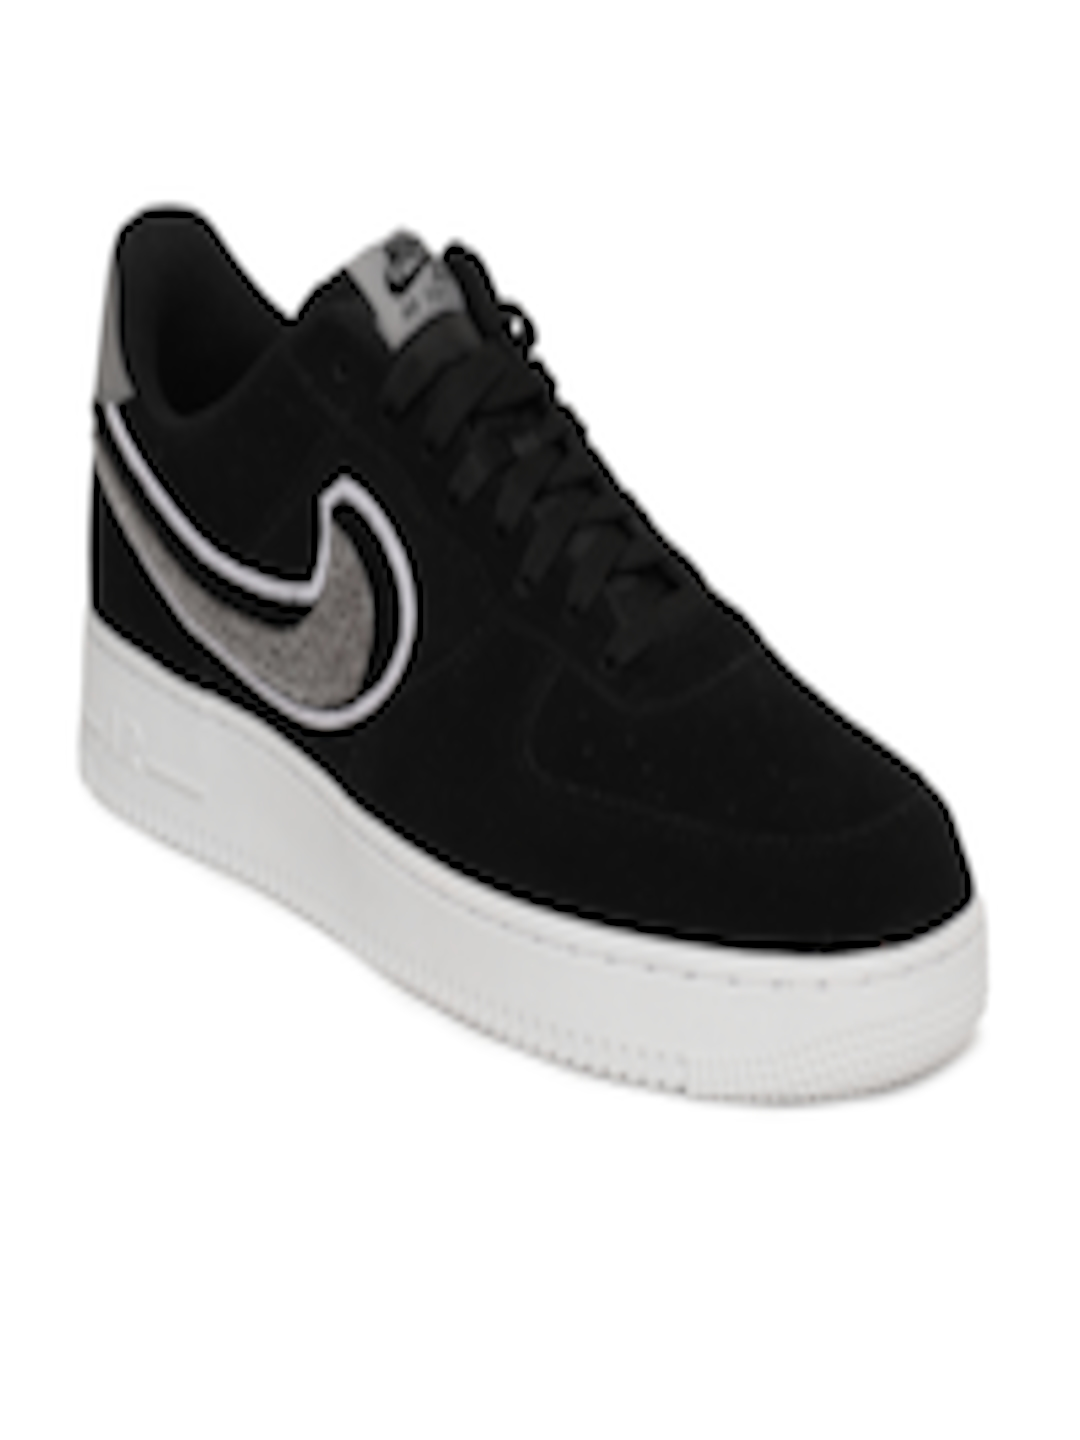 132434b1276a Buy Nike Men Black Air Force 1  07 LV8 Suede Basketball Shoes - Sports Shoes  for Men 6676890